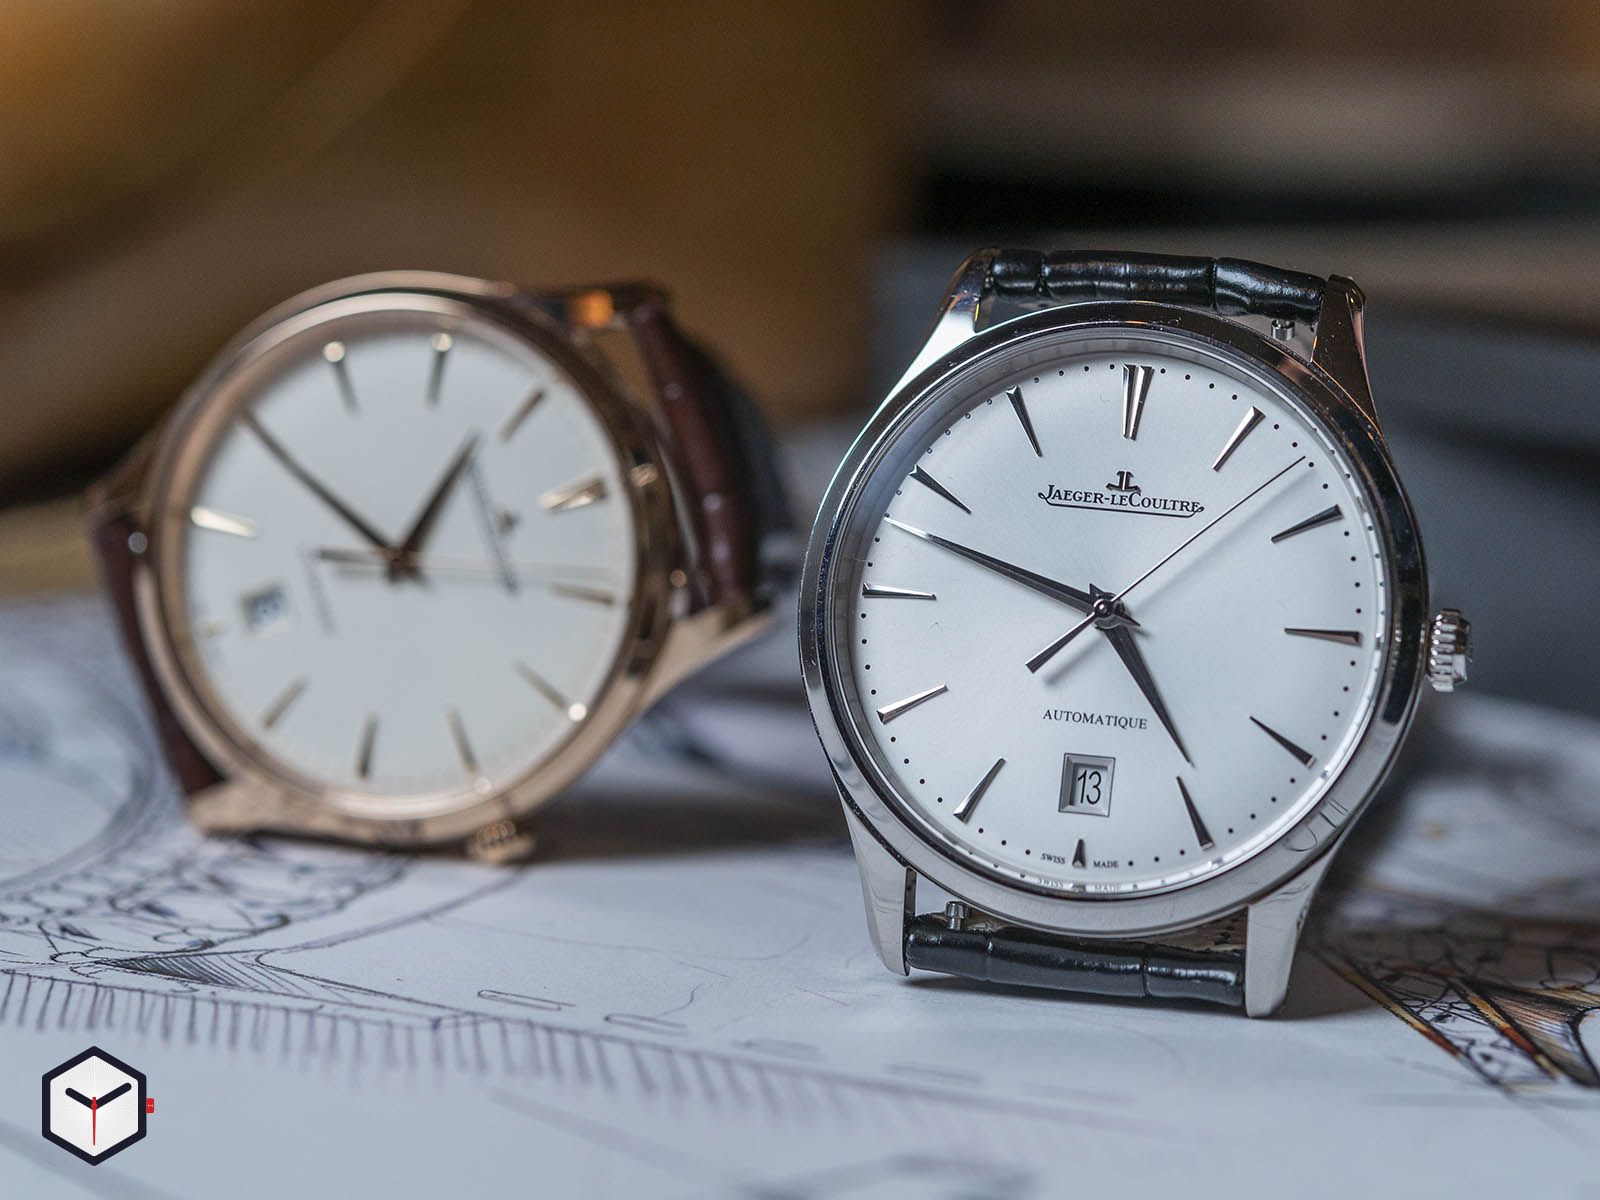 1232510-jaeger-lecoultre-master-ultra-thin-date-sihh-2019-7-.jpg